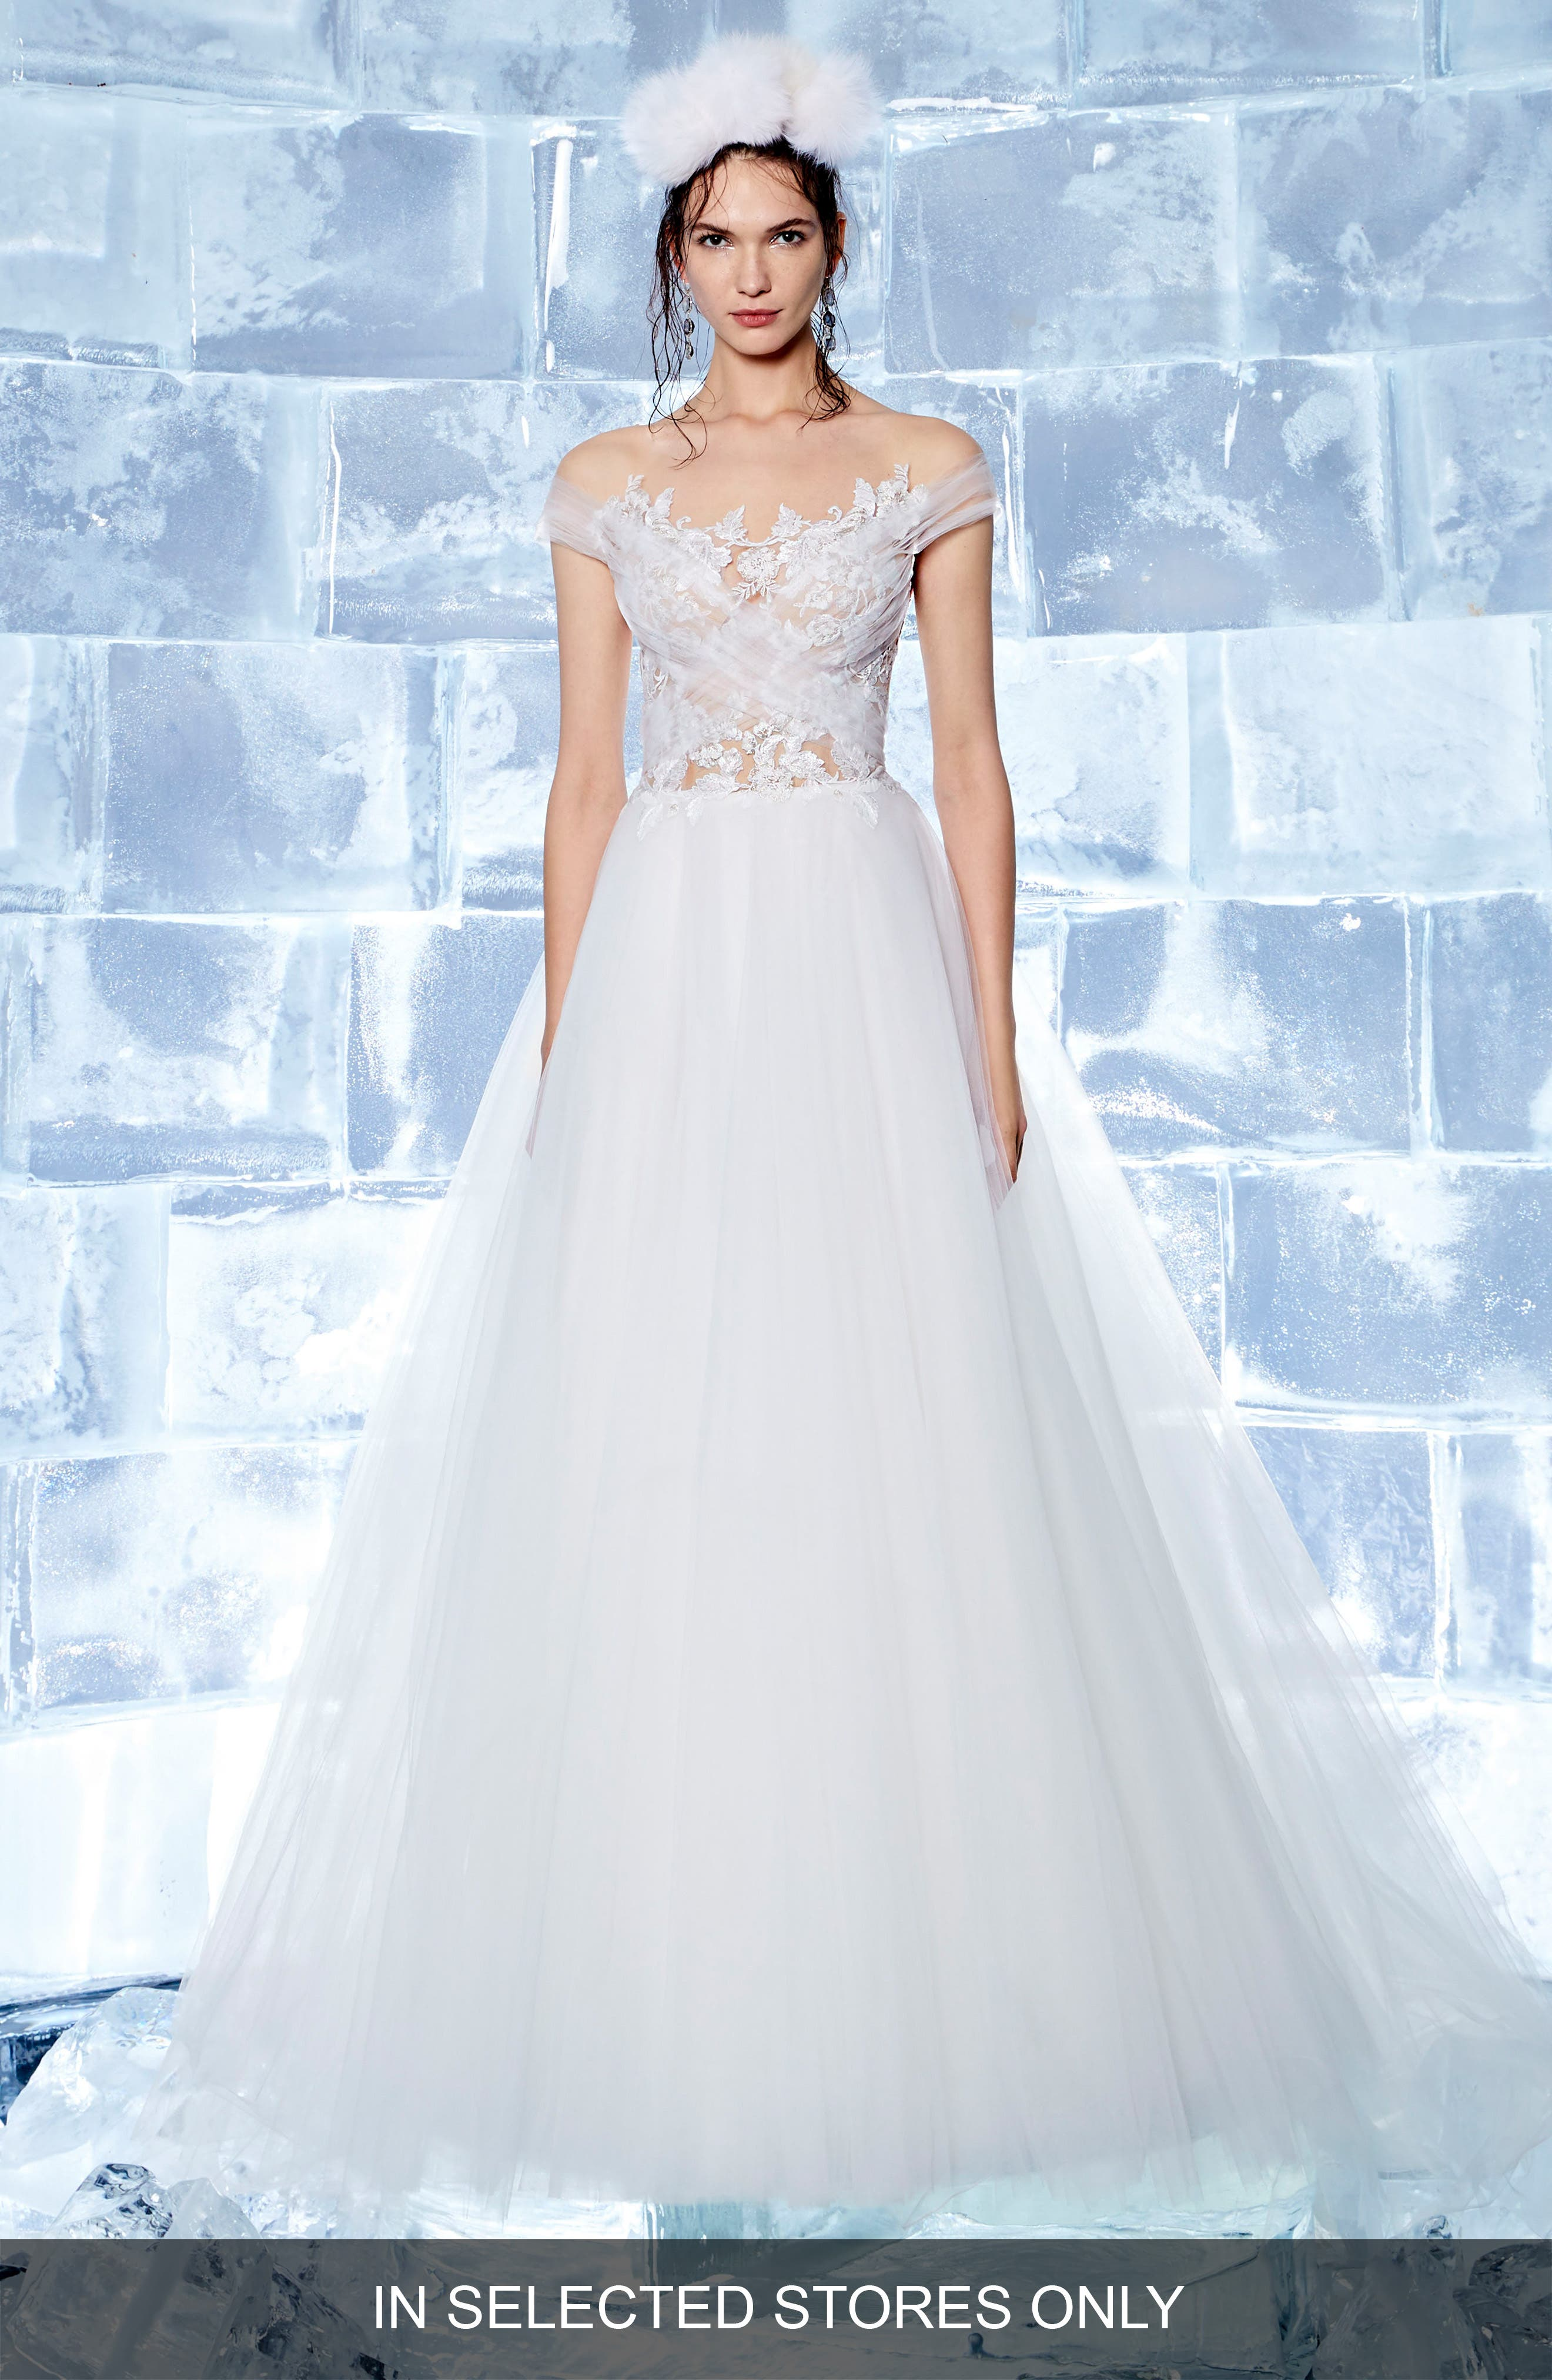 Ines by Ines Di Santo Neive Off the Shoulder Ballgown